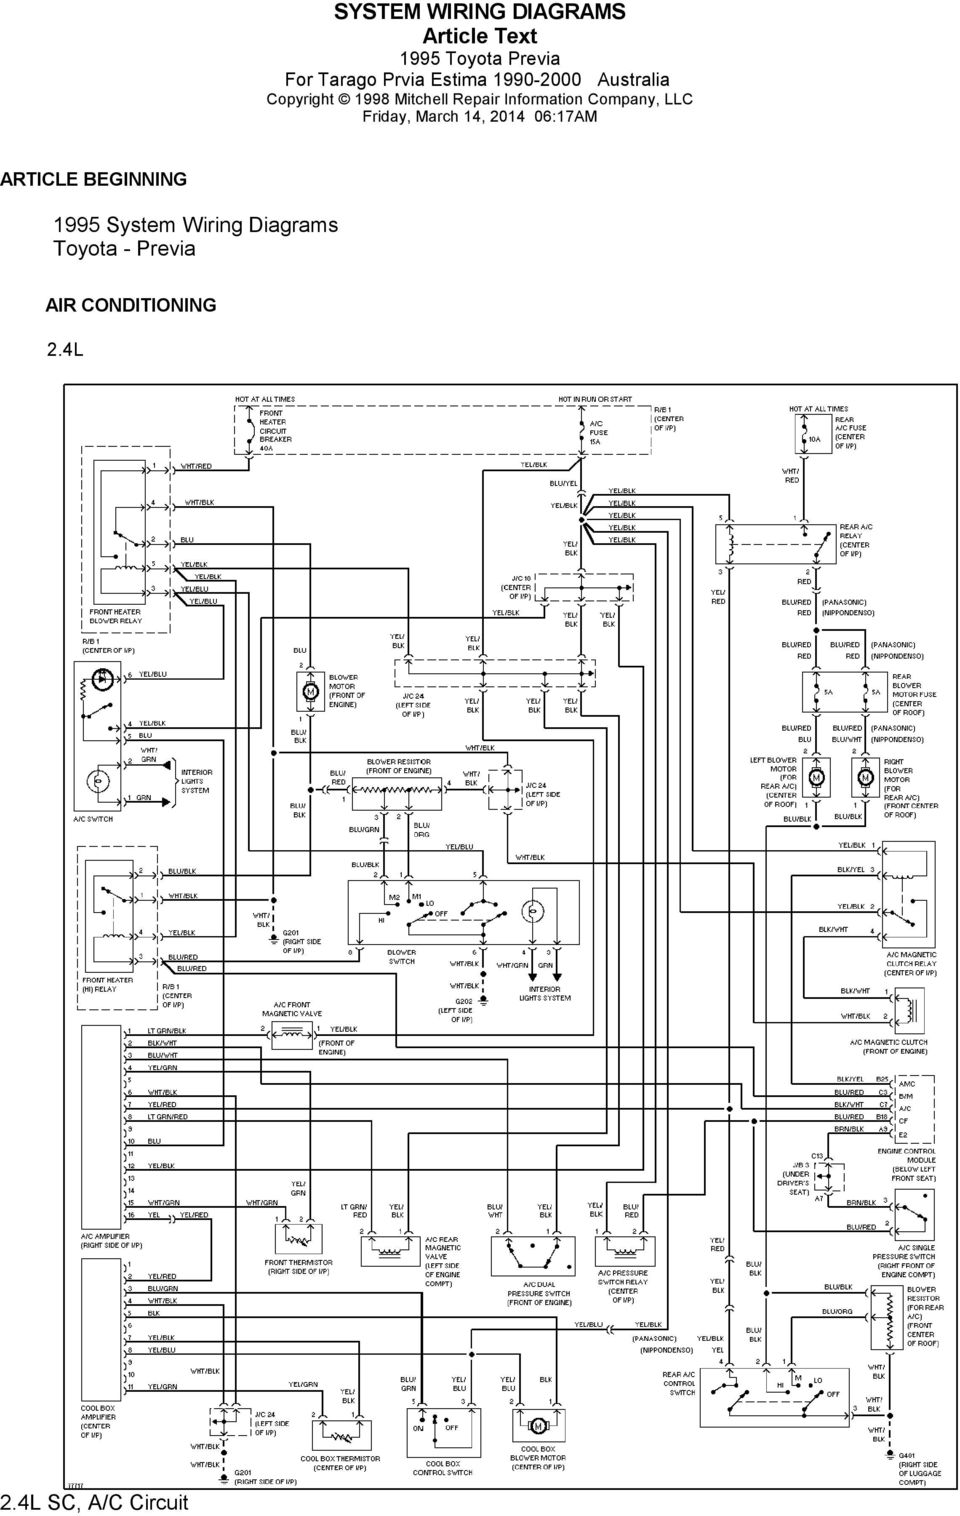 1995 system wiring diagrams toyota - previa. 2.4l sc, a/c ... toyota previa electrical wiring diagrams toyota camry electrical wiring diagram #10